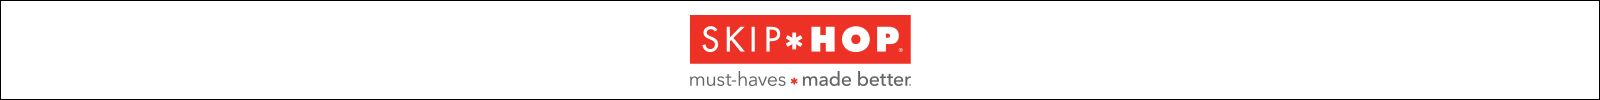 Skip Hop, must-haves made better